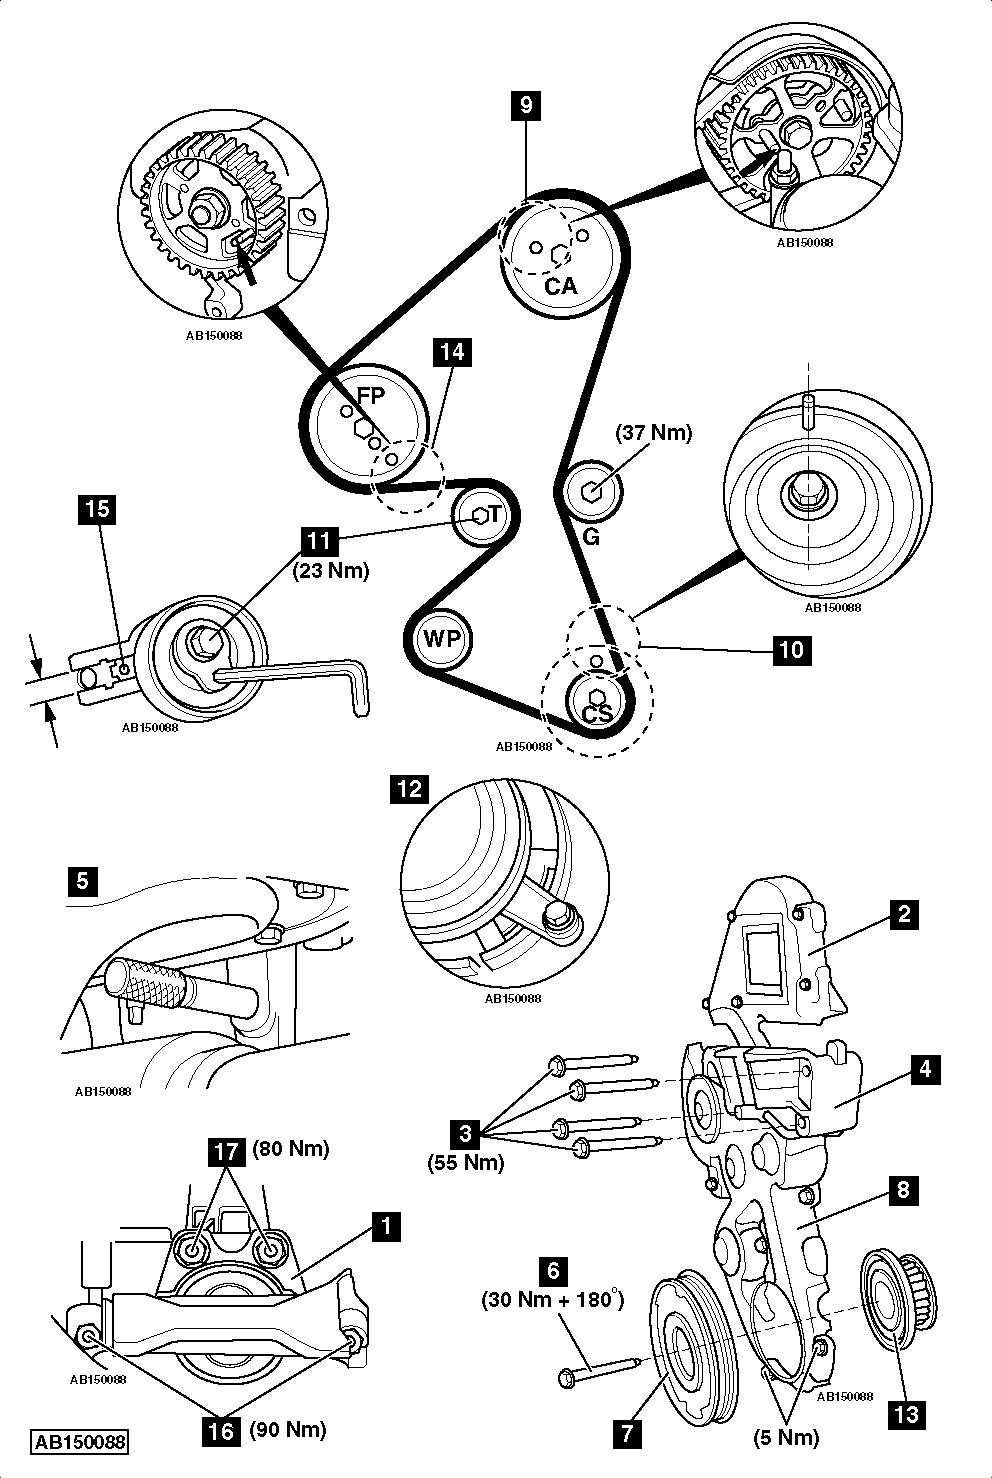 hight resolution of saab 900 2 0 engine diagram get free image about wiring